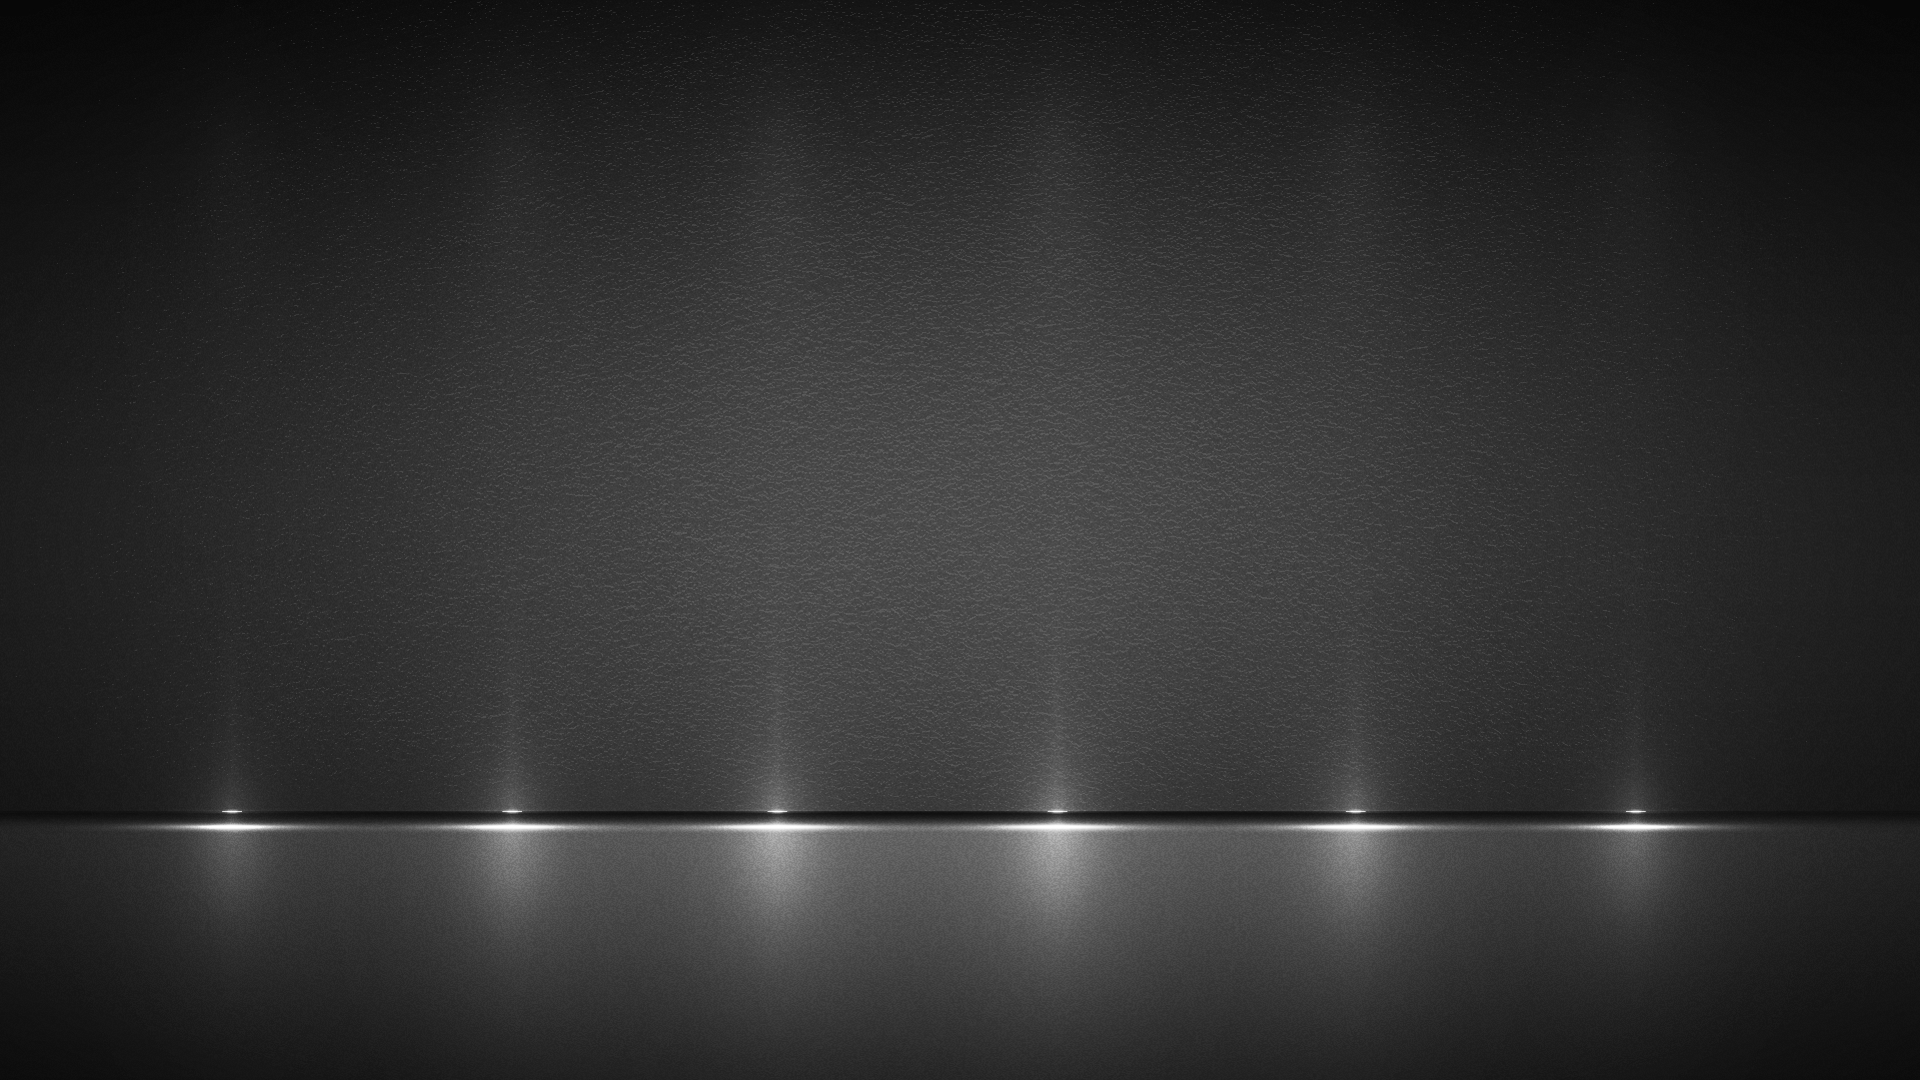 elegant-grey-illumination-background-presentations-powerpoint-backgrounds1